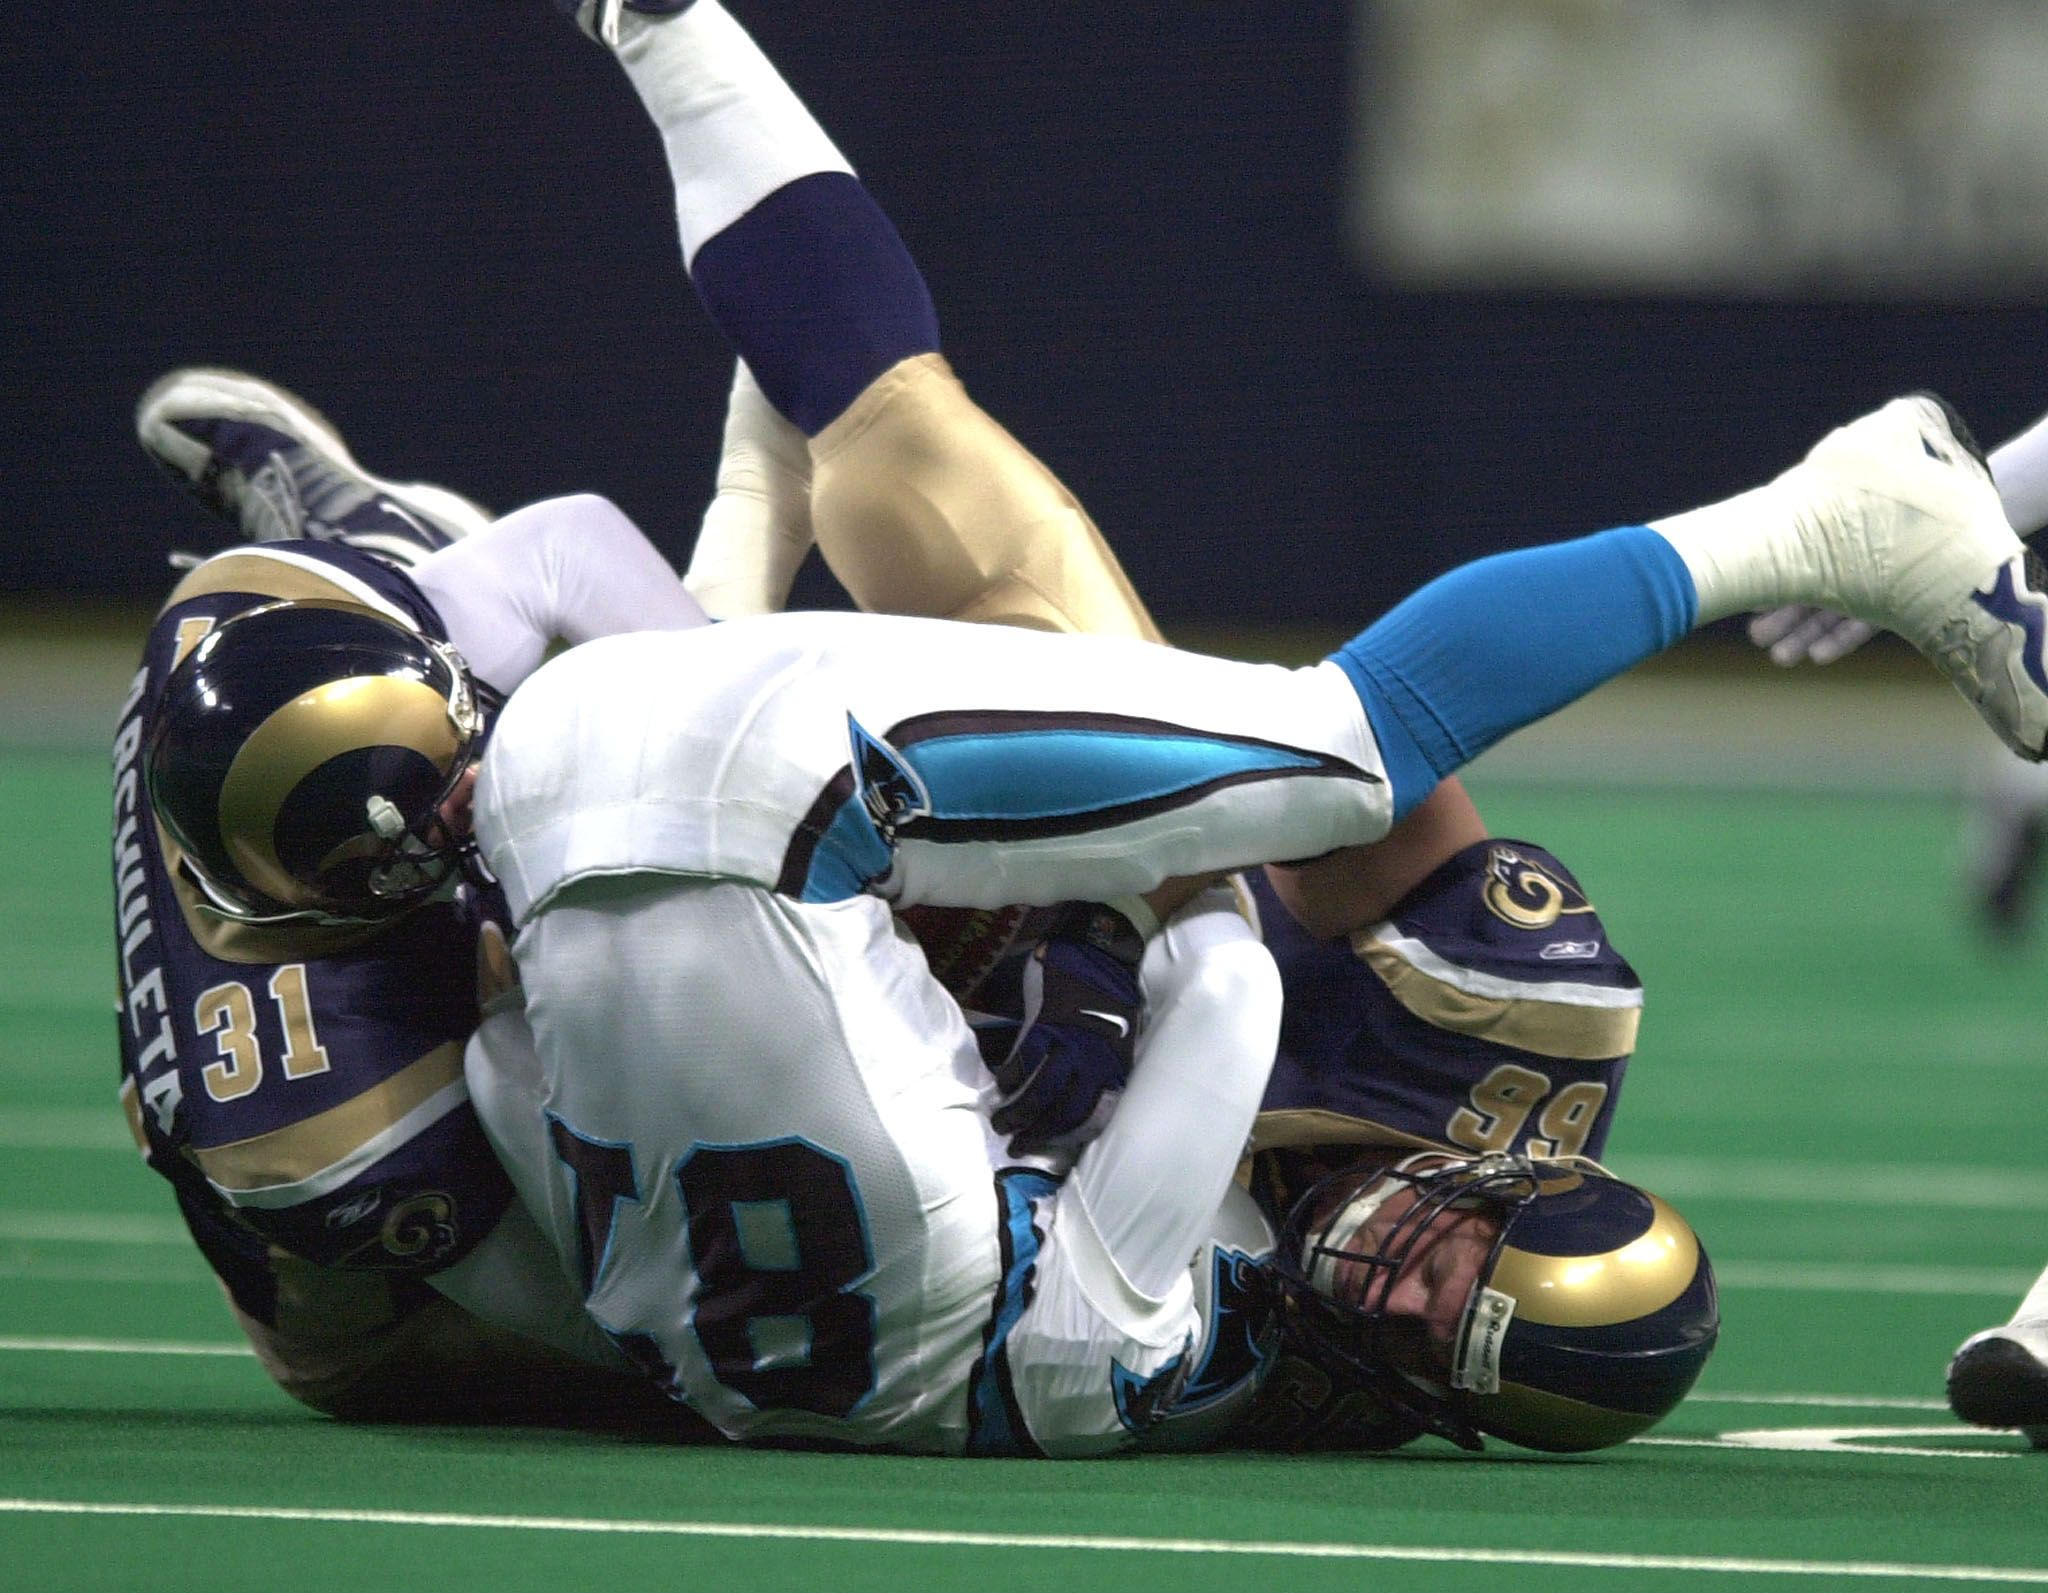 NFL tackle